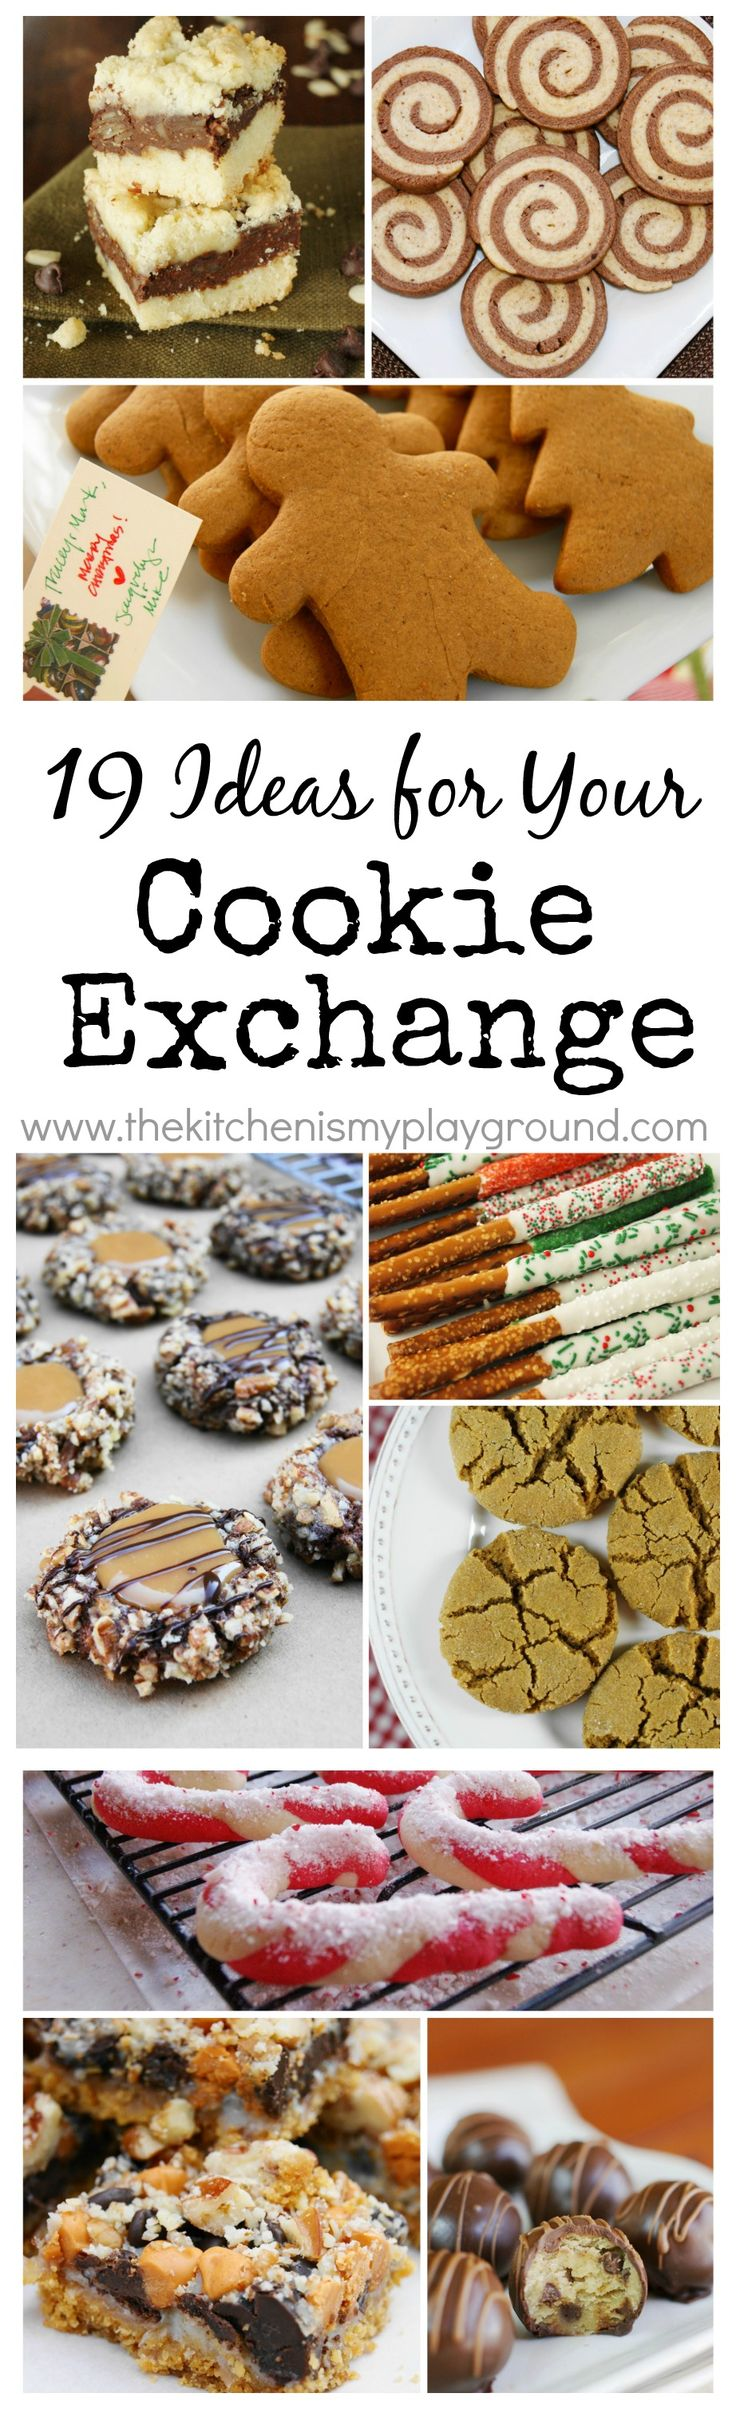 19 Sweet-Treat Ideas to Make for a Cookie Exchange.  {Or for a Christmas cookie tray!}   www.thekitchenismyplayground.com